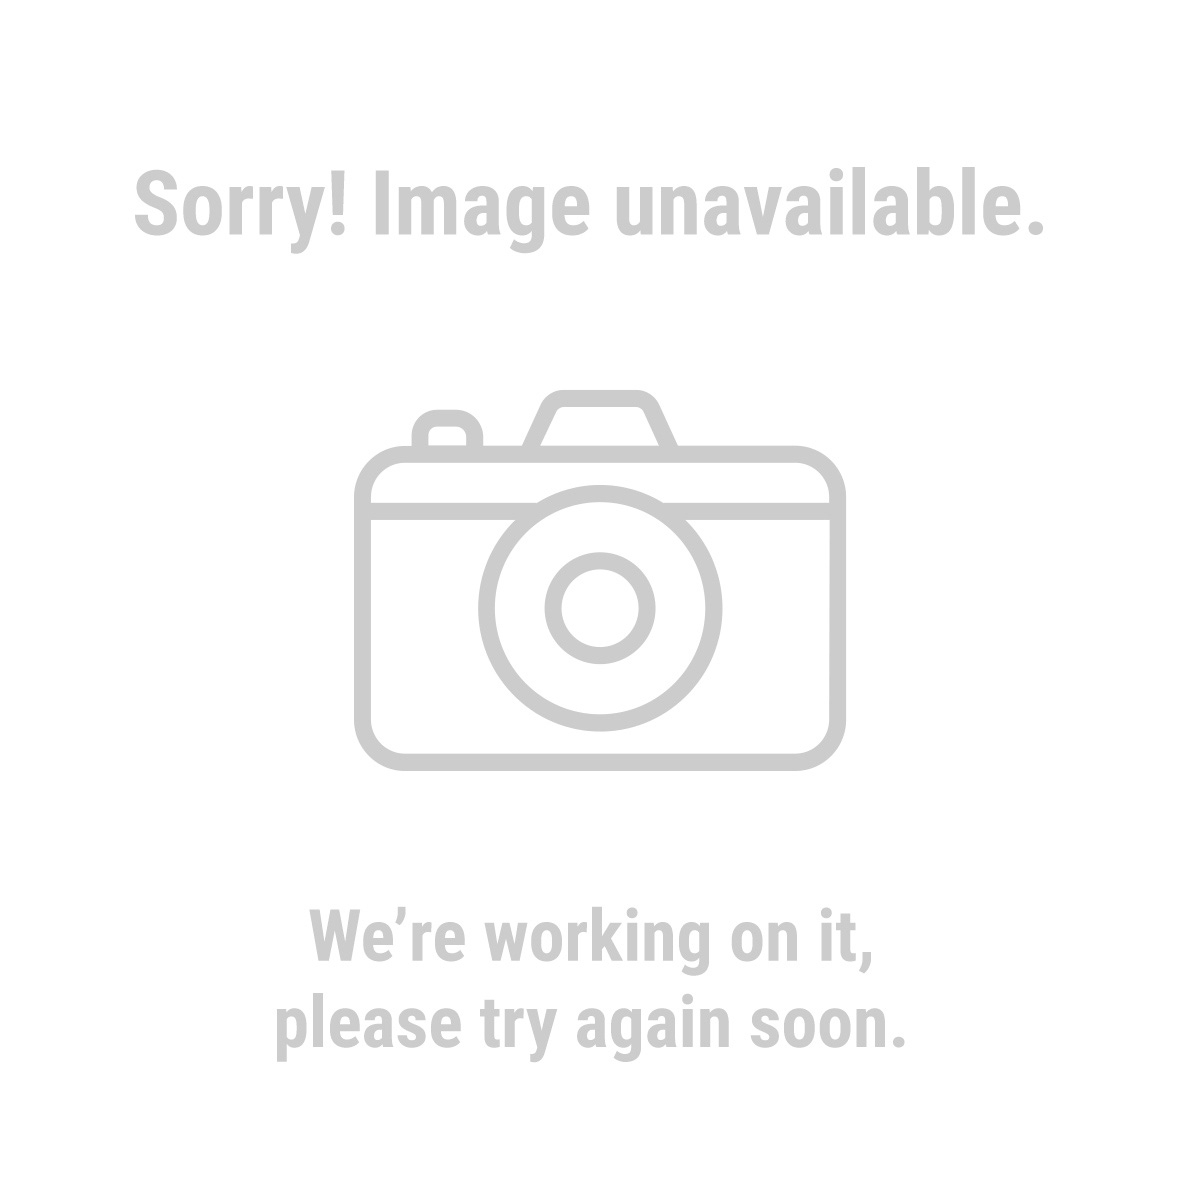 Central Pneumatic 95793 20 Oz. Hopper Gravity Feed Spot Blaster Gun